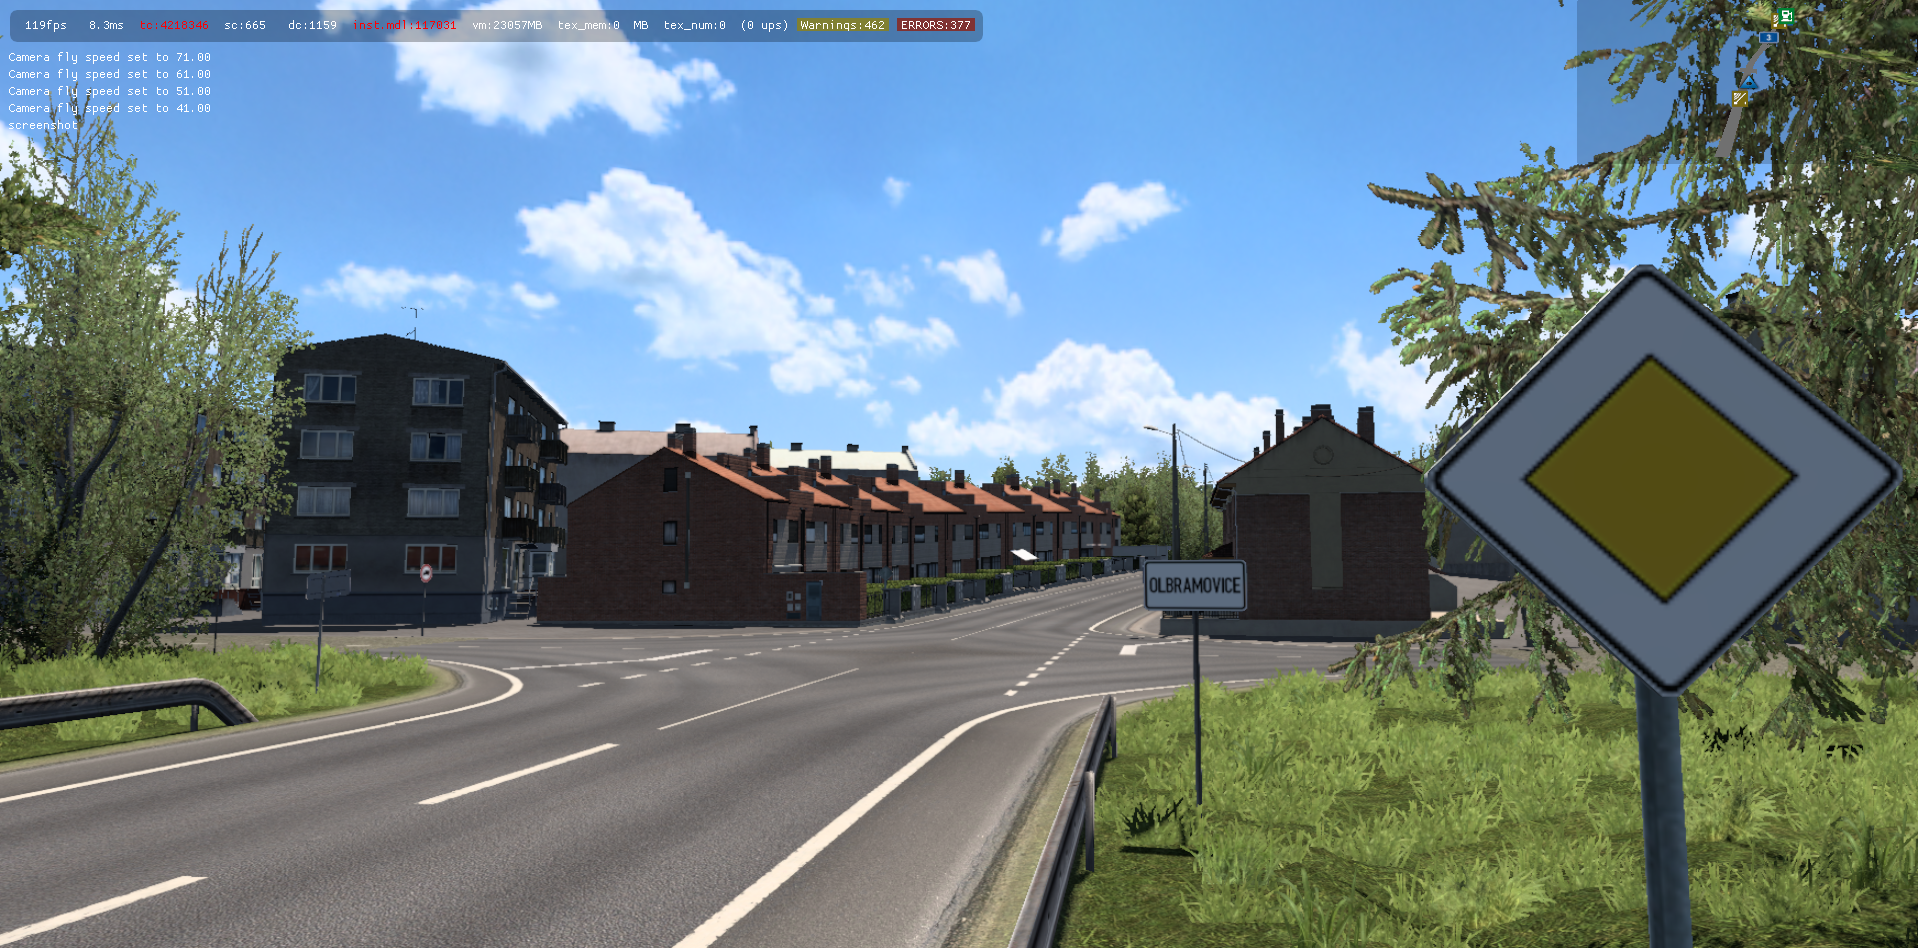 ets2_20210808_233732_00.png